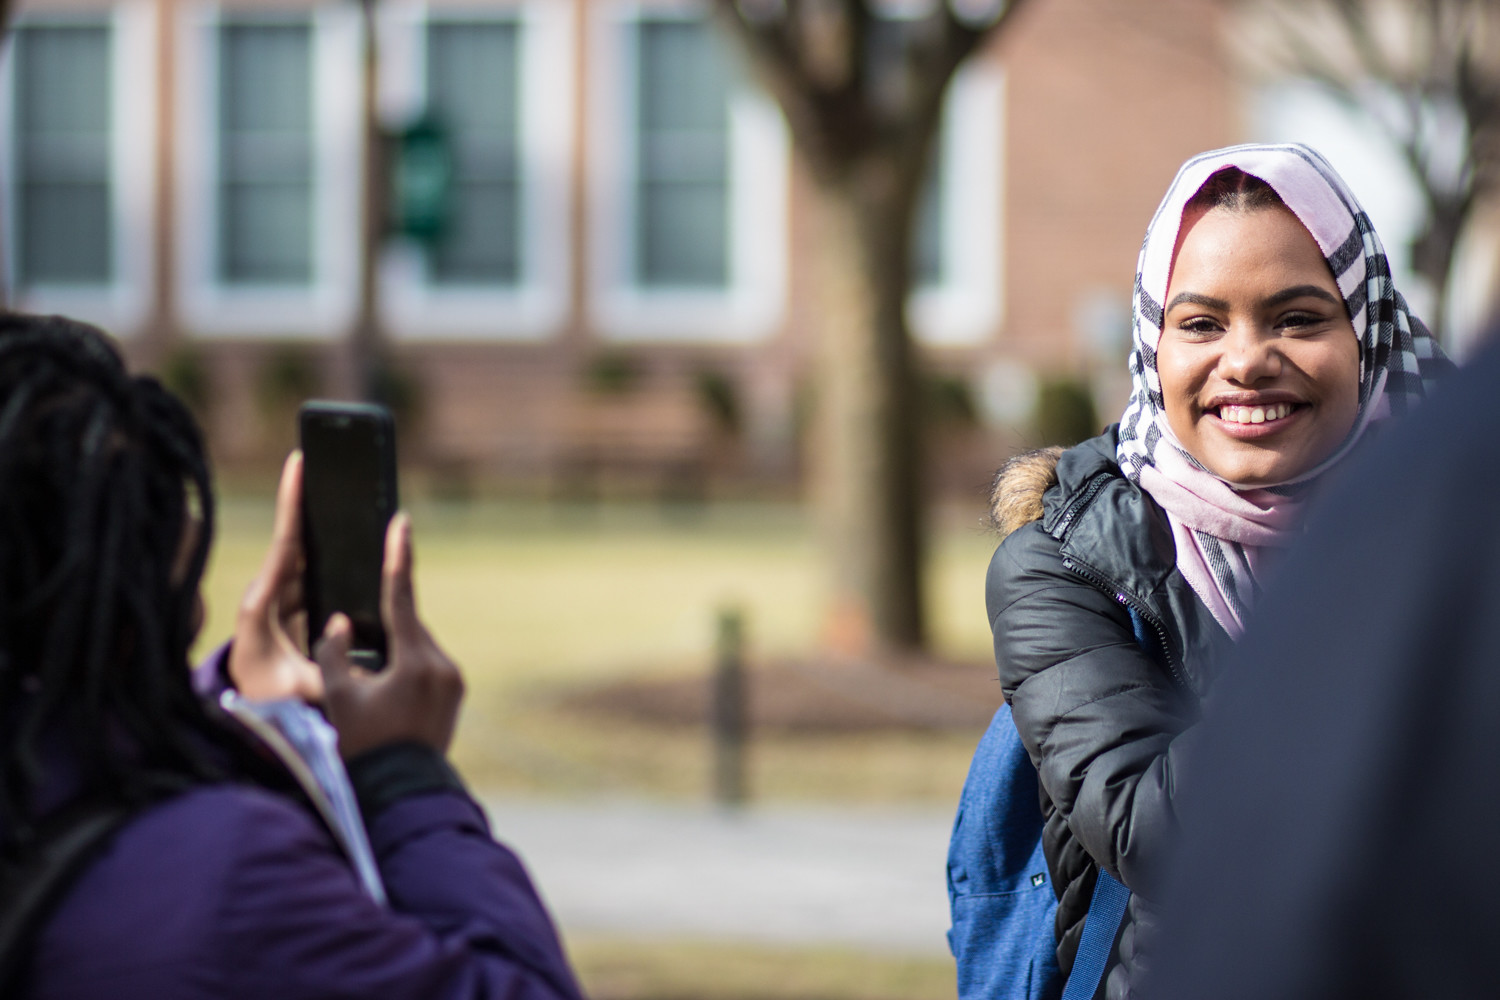 Muslim and non-Muslim female students and faculty alike partook in World Hijab Day on the quadrangle at Manhattan College.